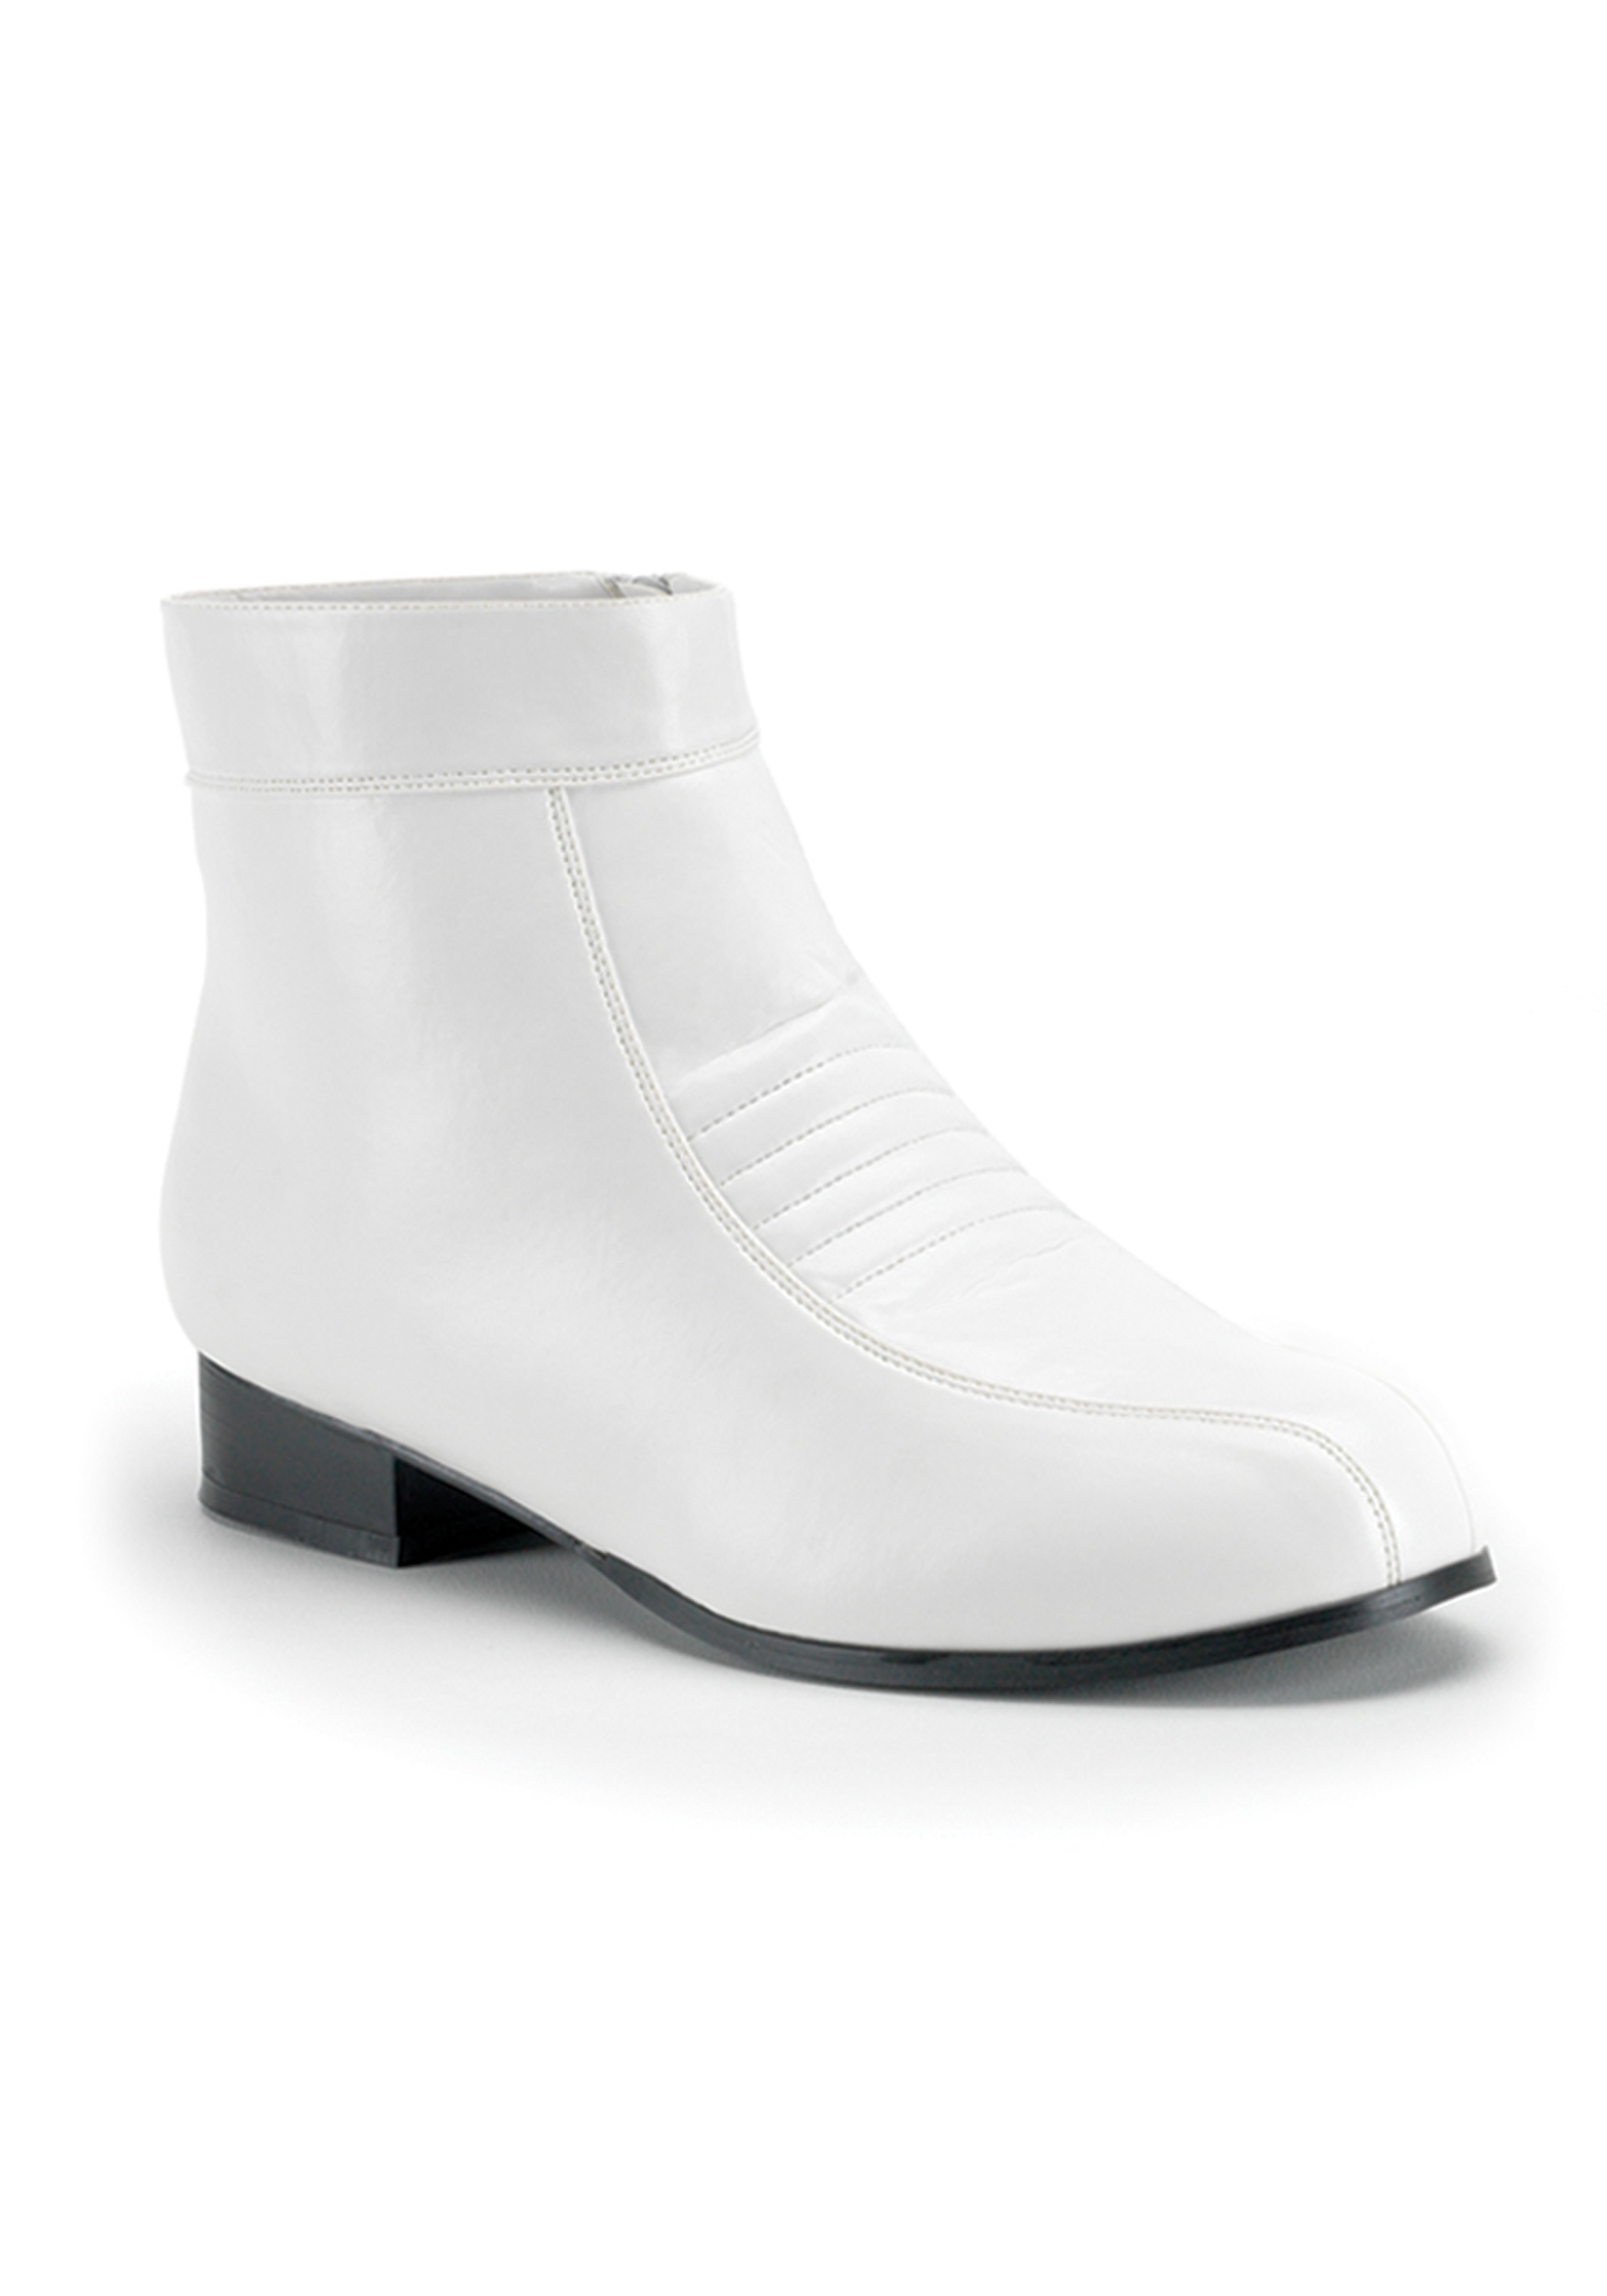 Costume Boots and Shoes - Women's, Men's, Kids Boots